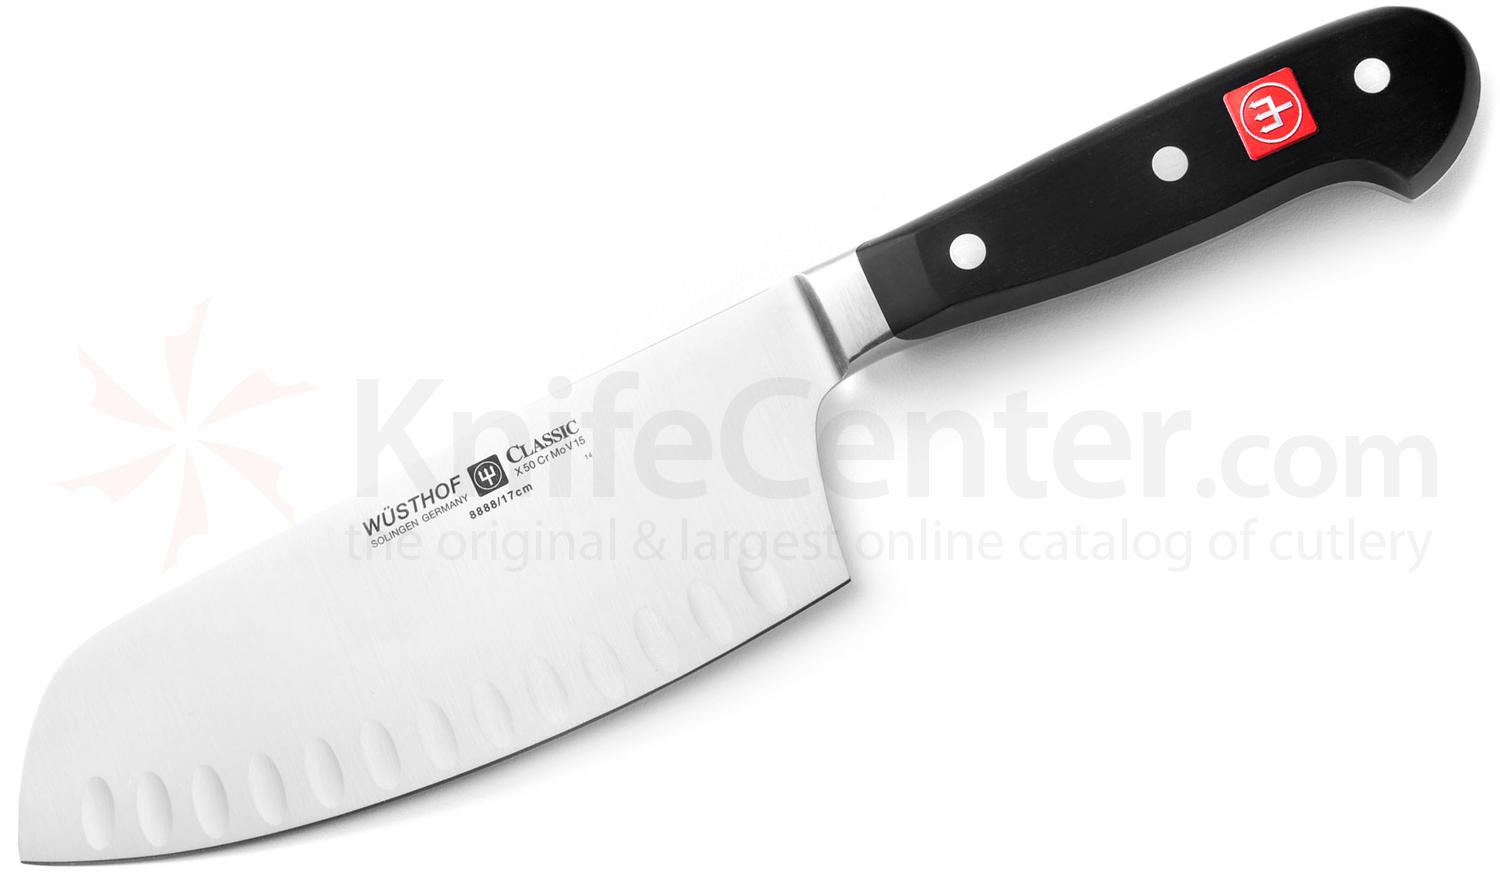 Wusthof Classic 7 inch Chai Dao Knife, Hollow Edge